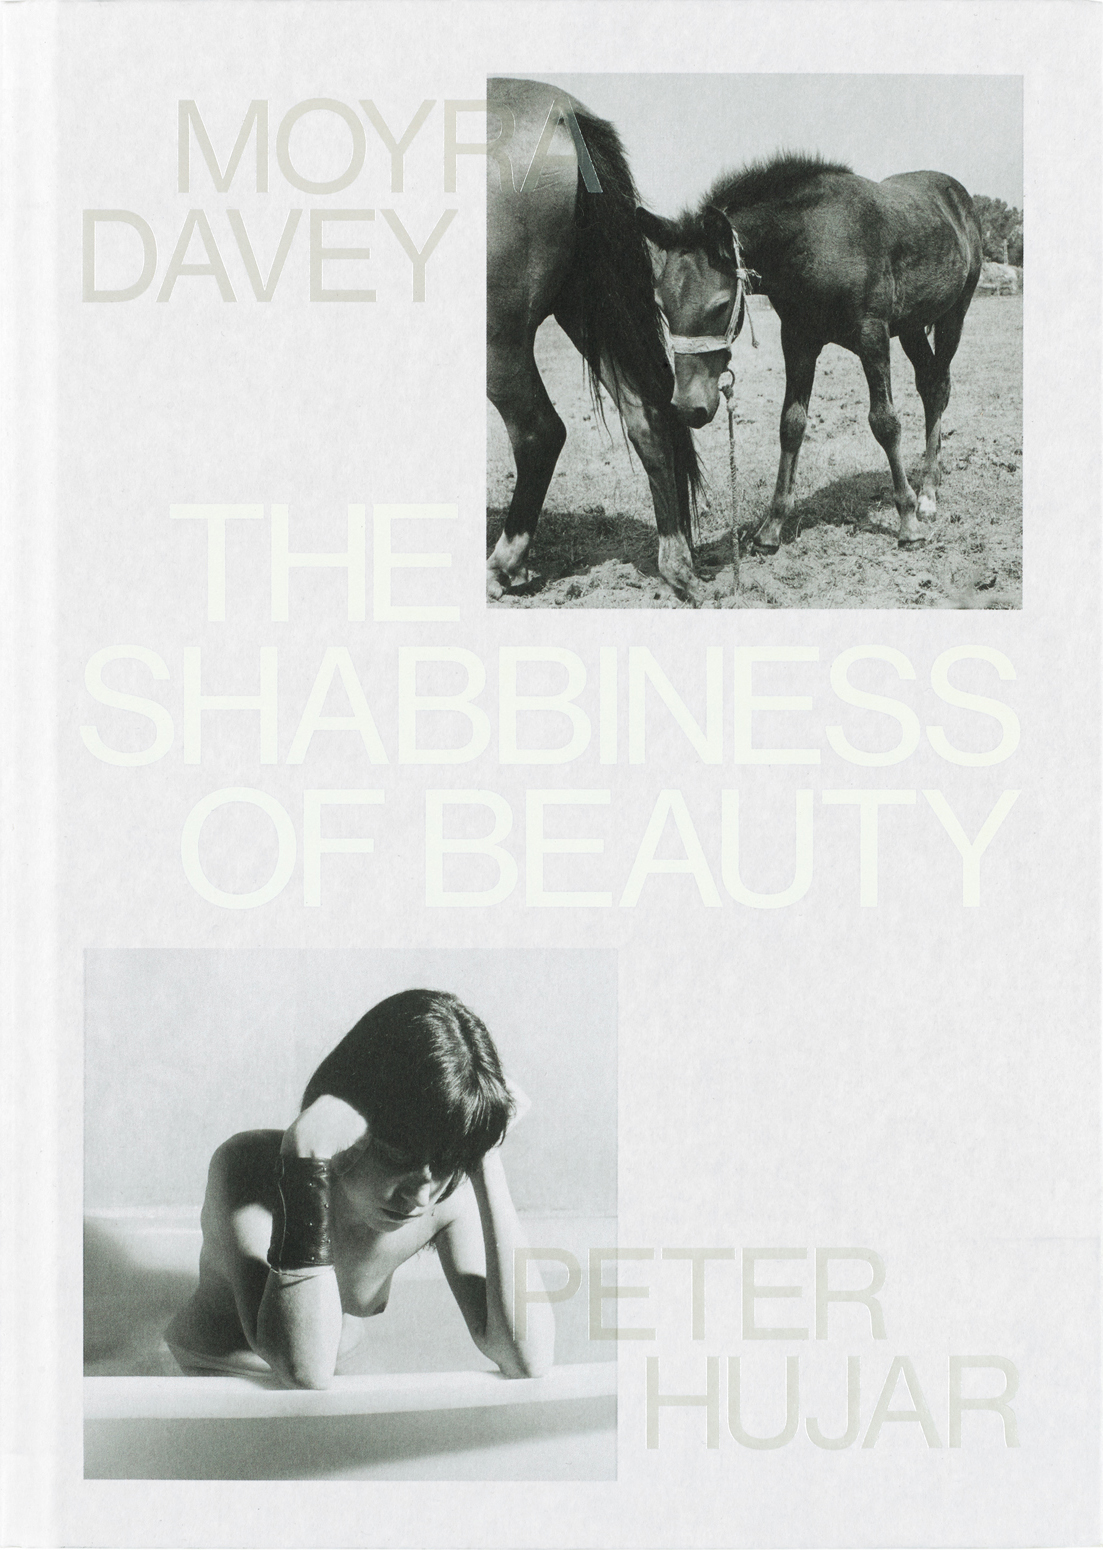 Moyra Davey & Peter Hujar – The Shabbiness of Beauty 2021, 128 pages, hardcover, fully illustrated in b/w and color, 17 x 24 cm Euro 40,- – This book originated out of an exhibition that Moyra Davey organized at Galerie Buchholz in Berlin. For this, Moyra Davey delved into Peter Hujar's archives and emerged mainly with little-known, scarcely seen images. In response to these, Davey created her own images that draw out an idiosyncratic selection of shared subjects. Side by side, the powerfully composed images admire, tease, and enhance one another in the manner of fierce friends, forming a visual exploration of physicality and sexuality that crackles with wit, tenderness, and perspicacity. Spiritually anchored in New York City – even as they range out to rural corners of Quebec and Pennsylvania – these images crystallize tensions between city and country, human and animal. Nudes pose with unruly chickens; human bodies are abstracted toward topography; seascapes and urban landscapes share the same tremulous plasticity. These continuities are punctuated by stark differences of approach: Davey's self-aware postmodernism against Hujar's humanism and embrace of darkroom manipulation. The rich dialogue between these photographs is personal and angular, ultimately offering an illuminating reintroduction to each artist through communion with the other's work. The book contains a new text by Eileen Myles and is published by Mack Books, London.